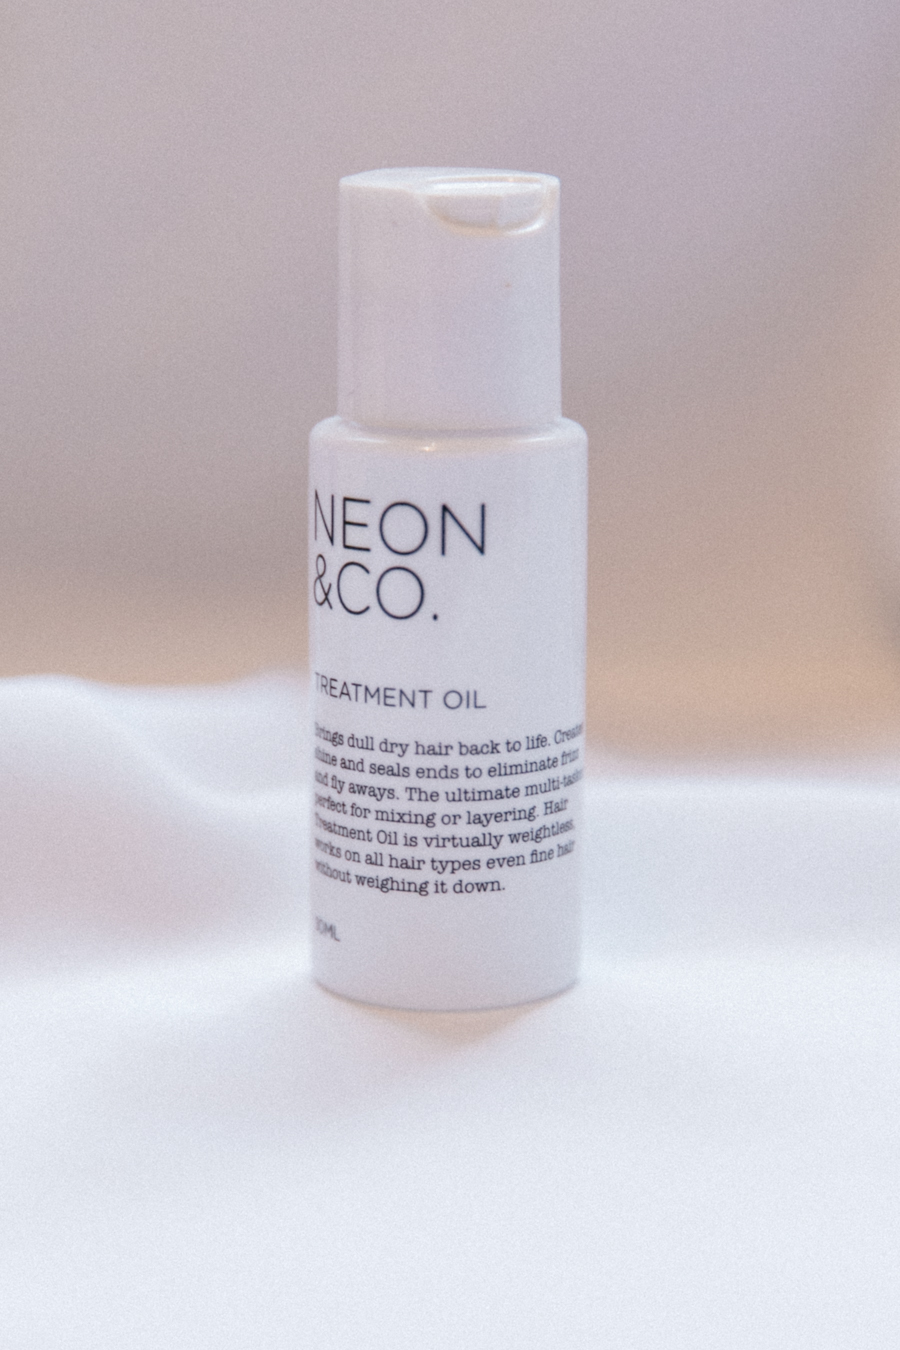 Neon & Co hair treatment oil for dry, straw-like hair.